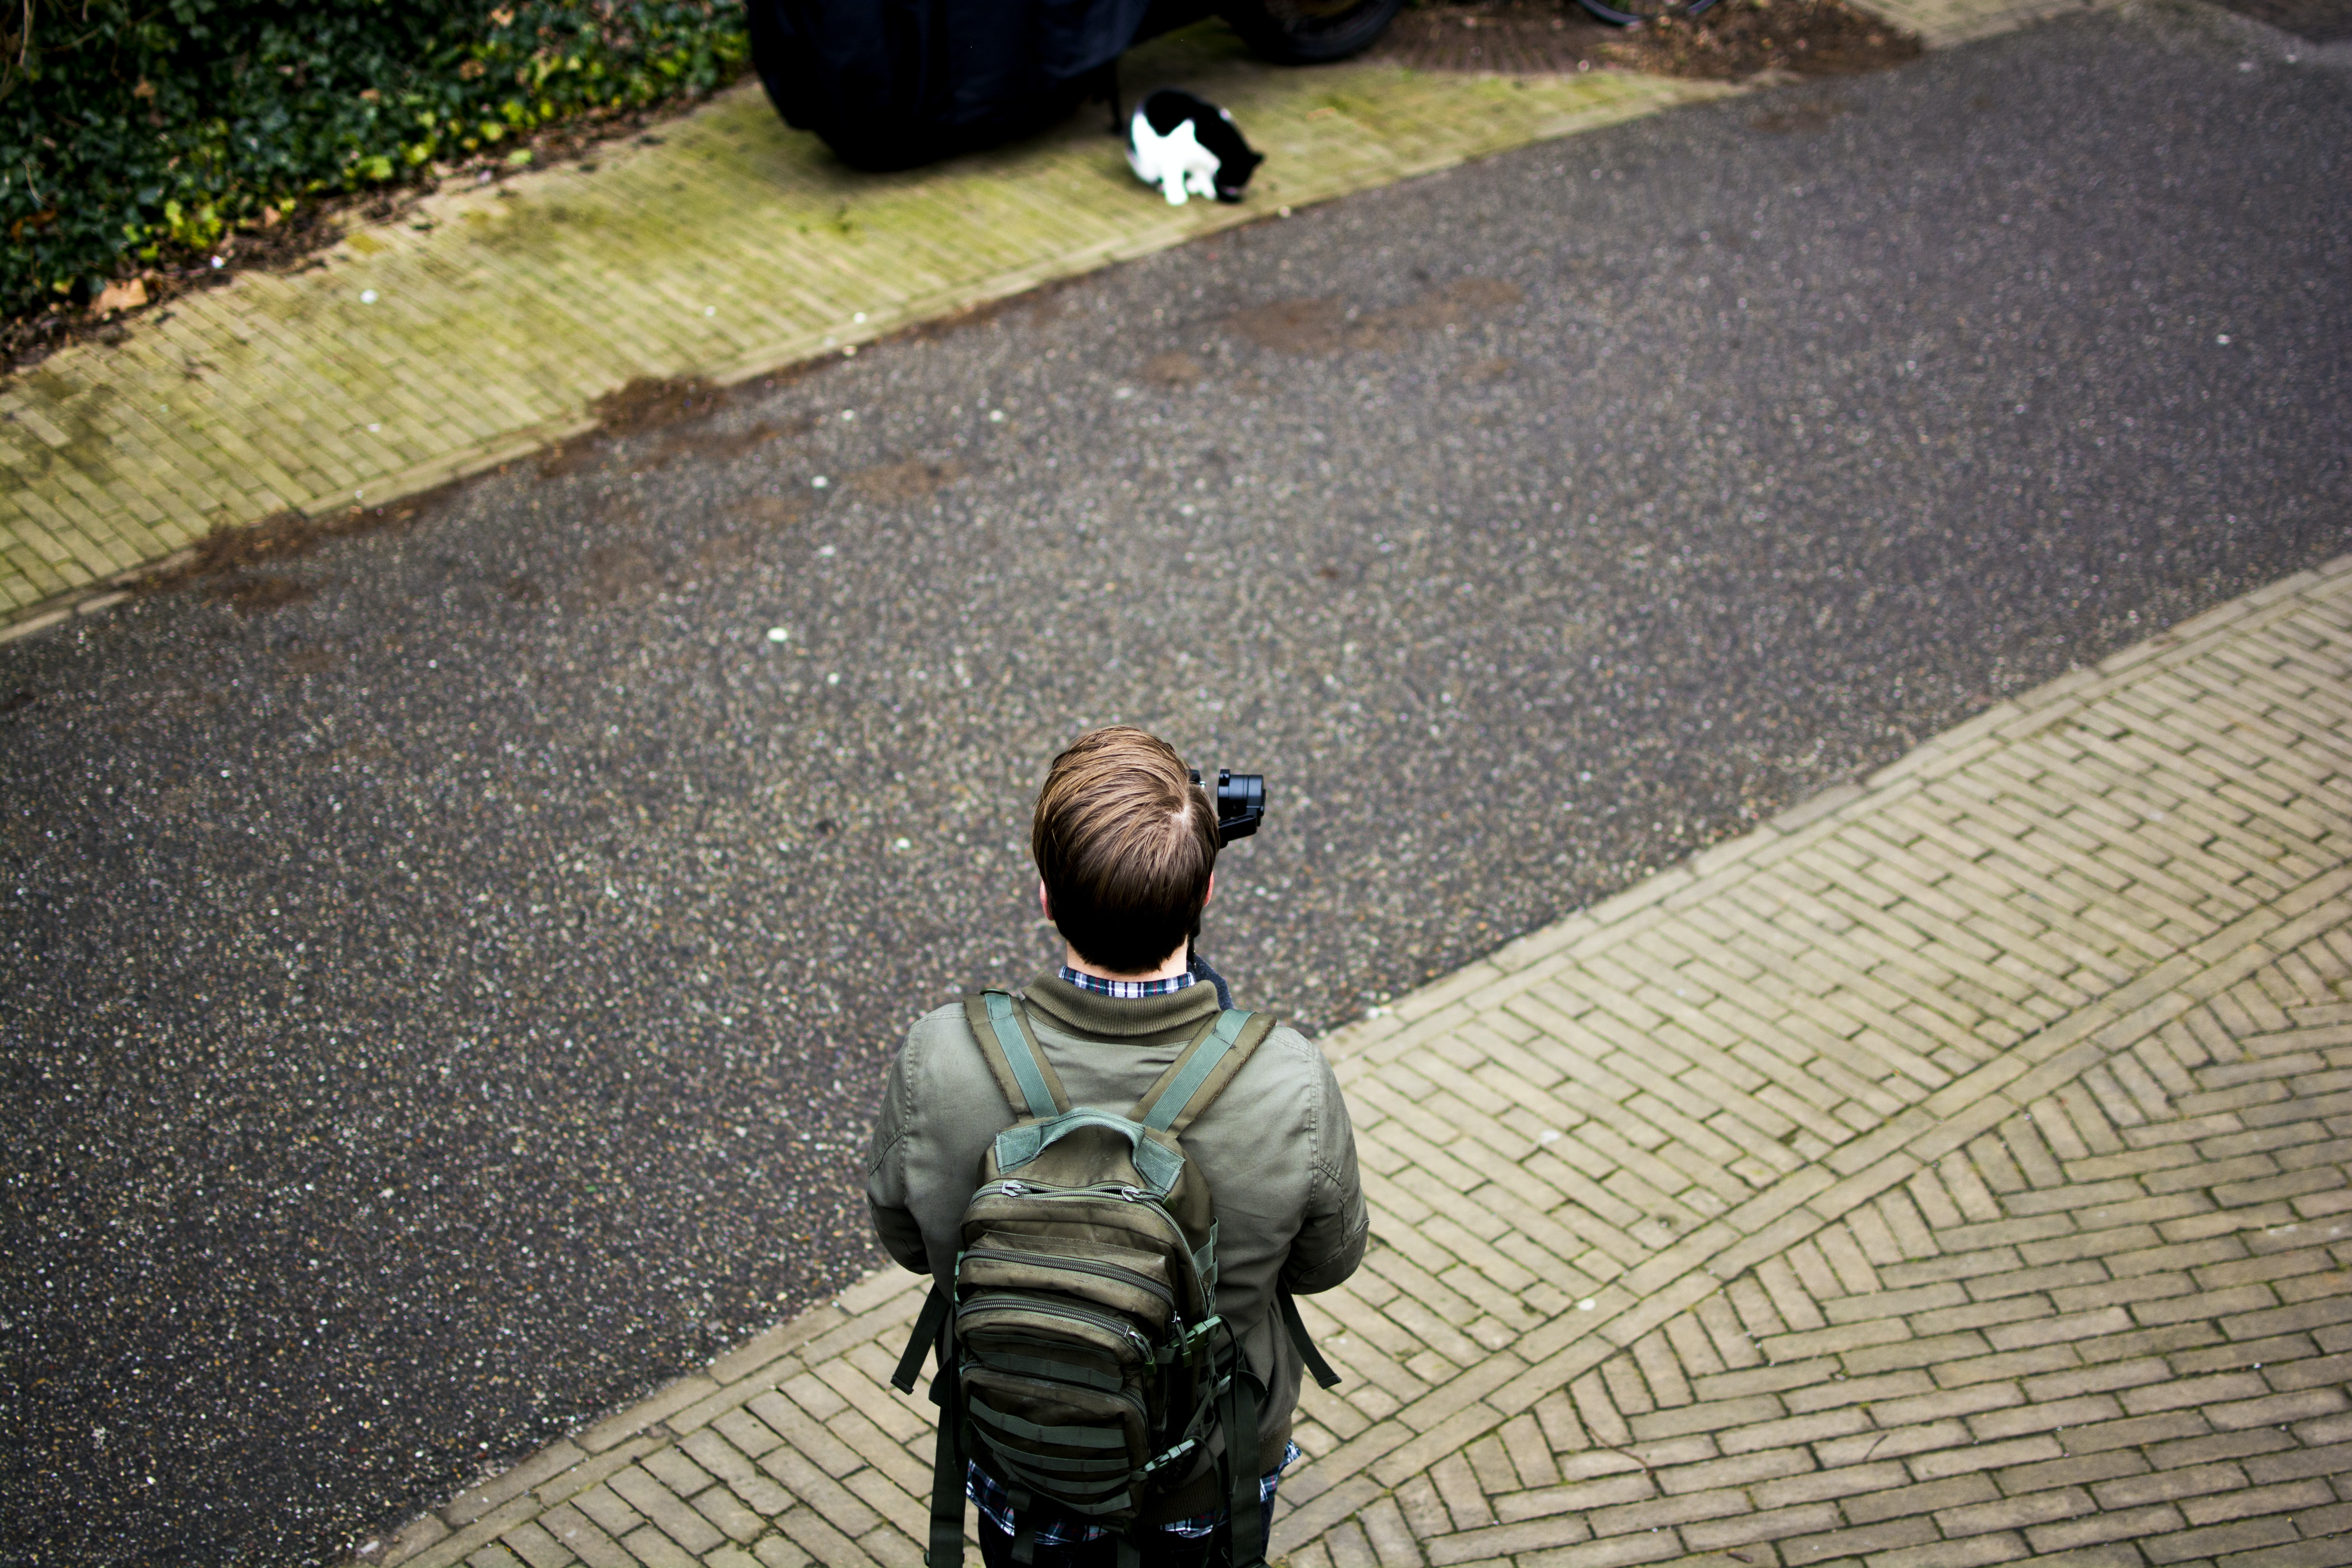 A man in a backpack holds a camera by a pathway in front of a cat